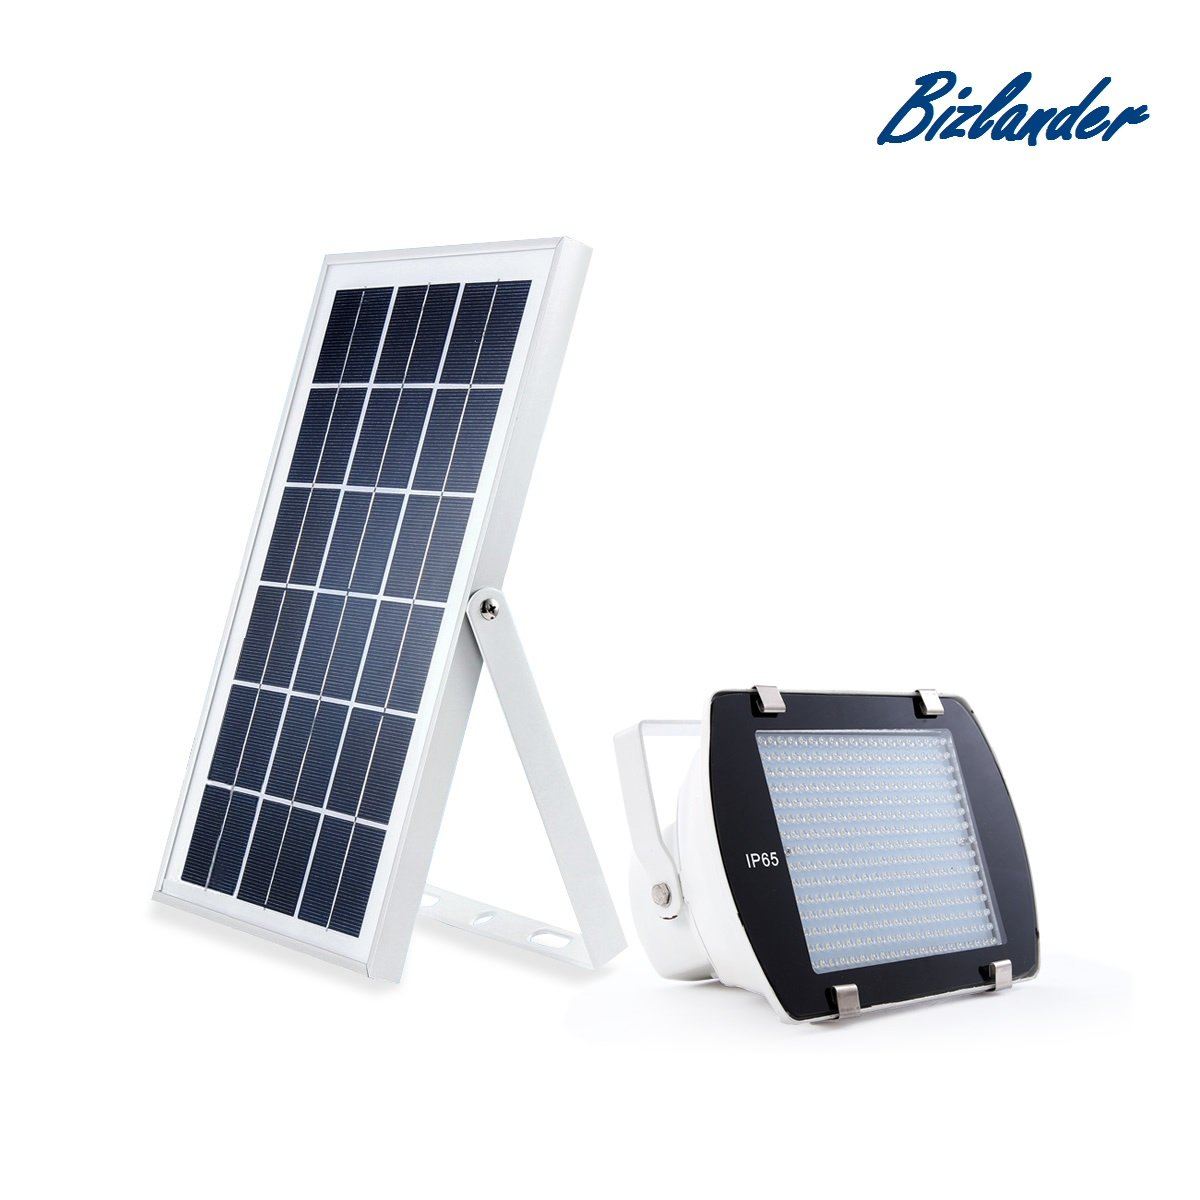 Bizlander Commercial outdoor Solar Light lamp 300 LED Portable with Lithium Battery easy Installation Dusk to Dawn for Security Storage shed porch spot Camping Lawn Barn light Signs Manual Switch